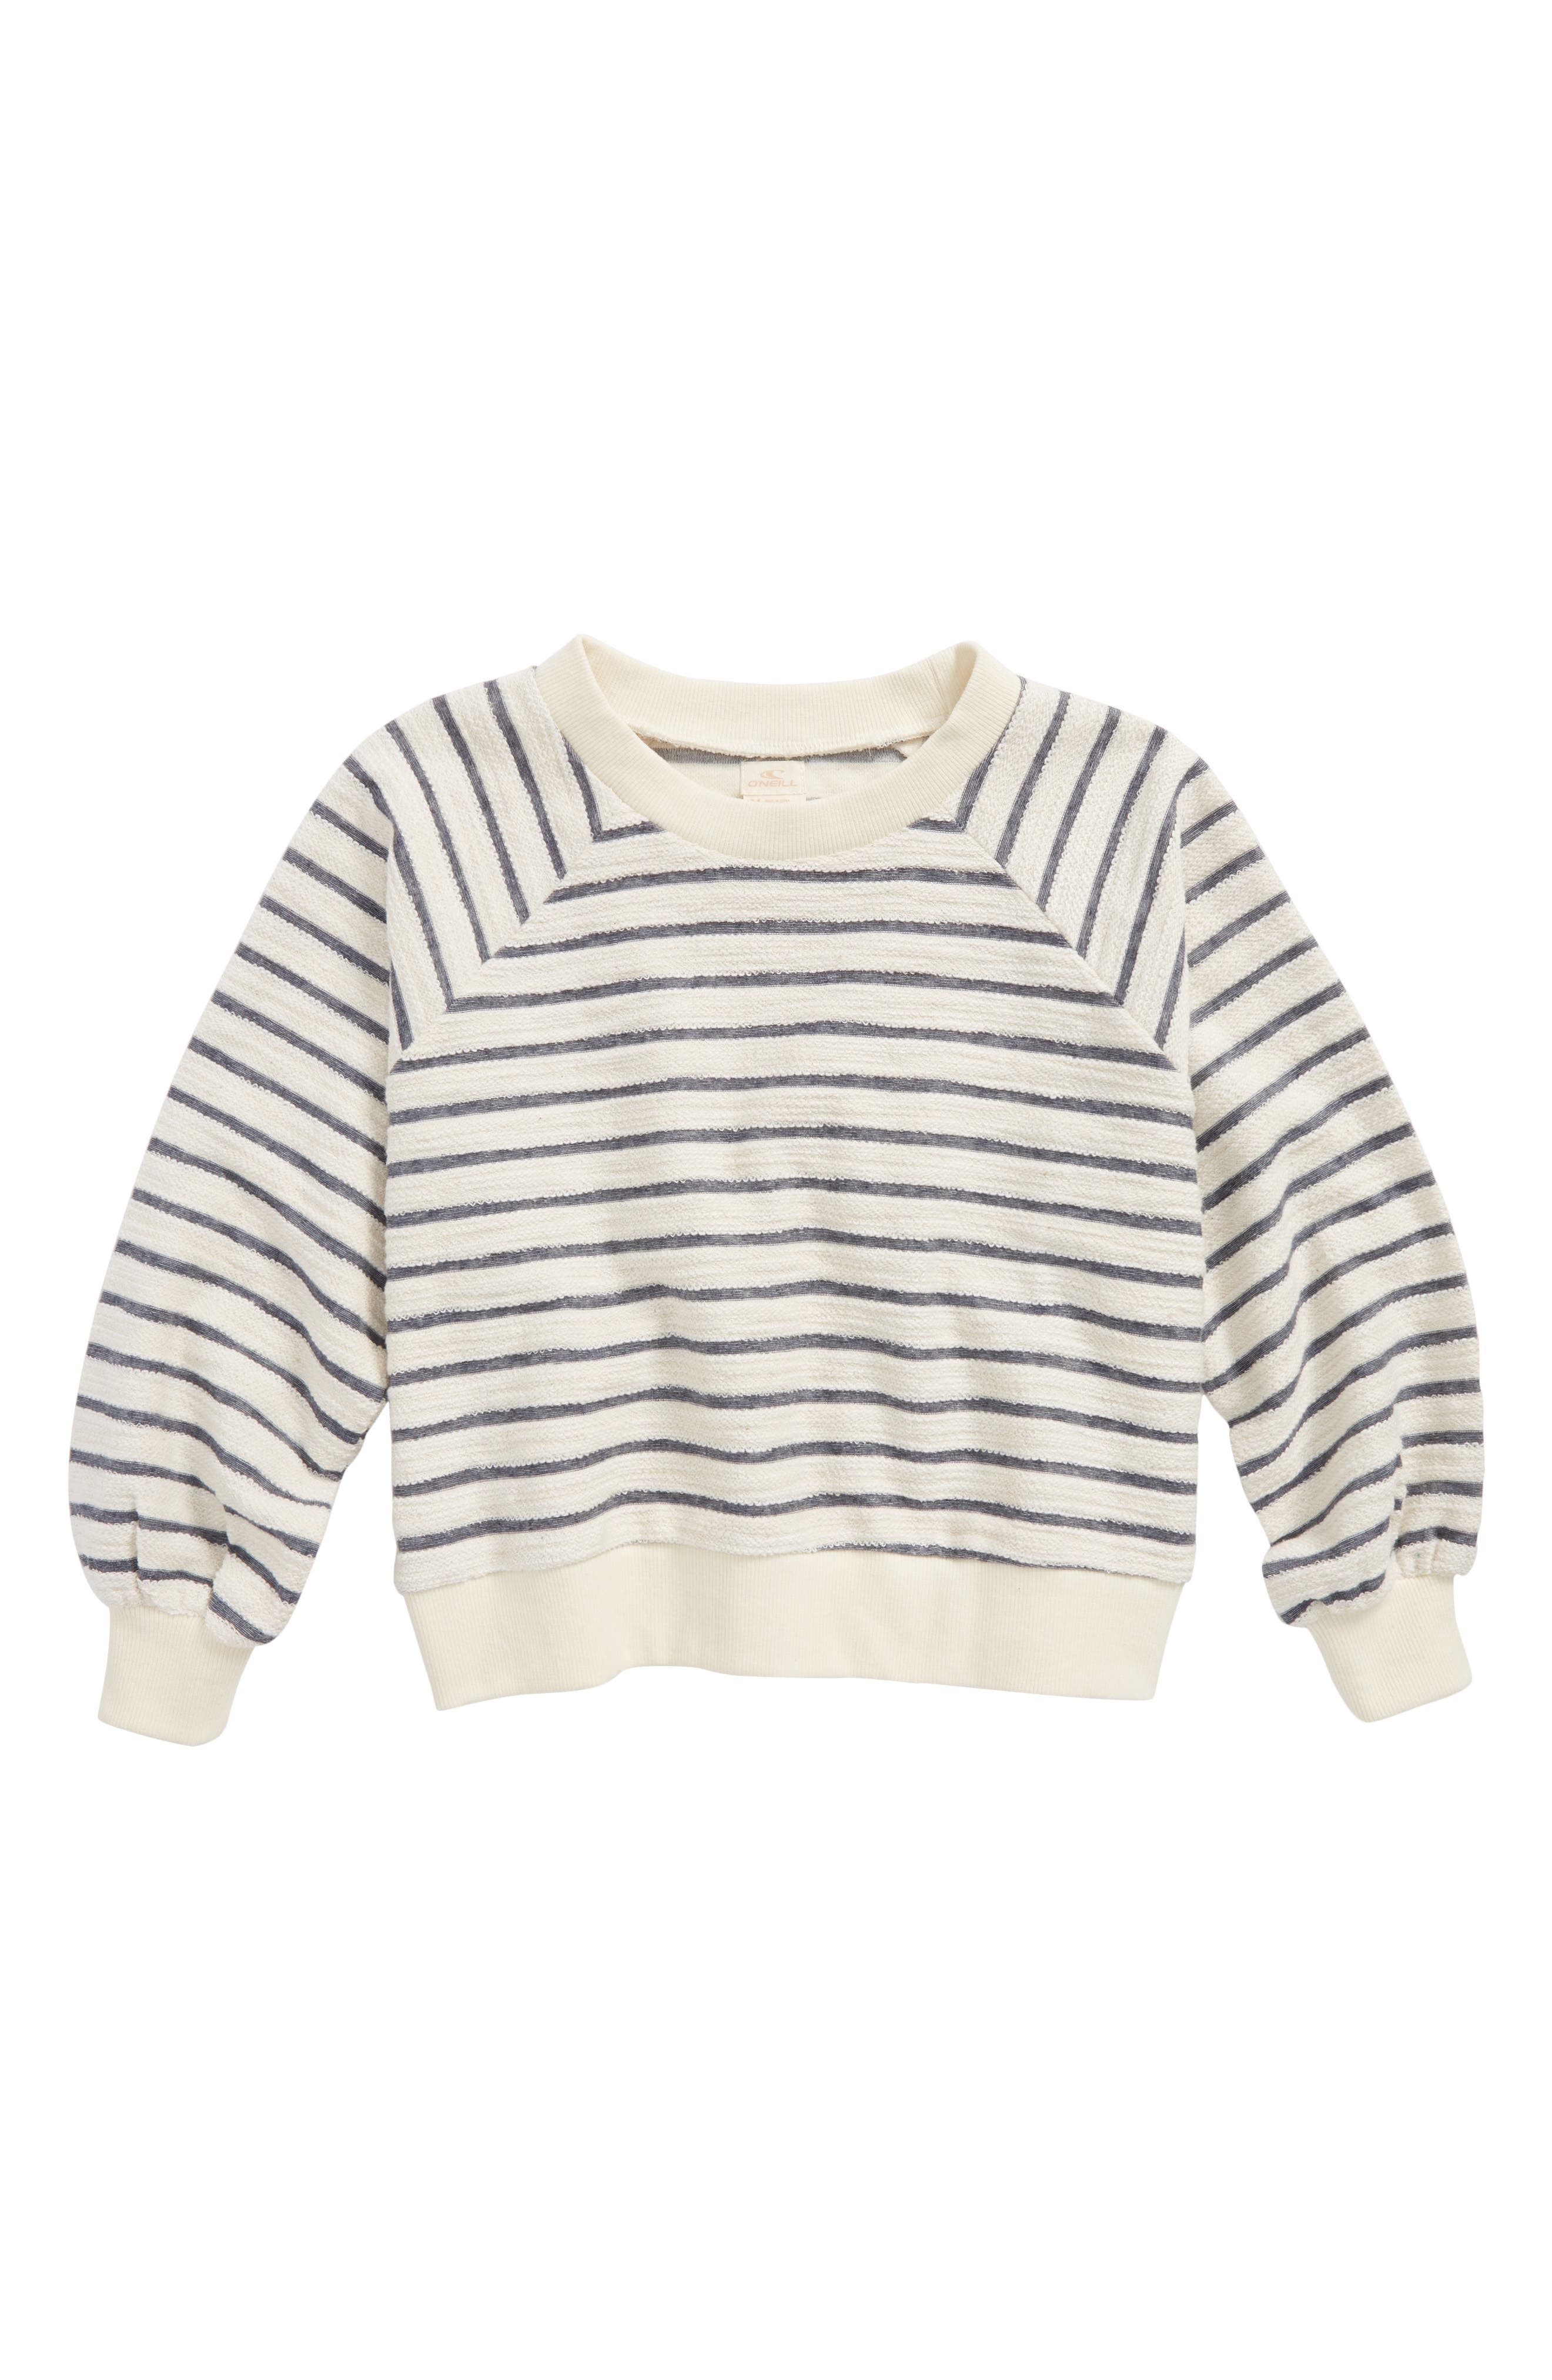 Sleep In Stripe Sweatshirt,                             Main thumbnail 1, color,                             White/ Blk Stripe